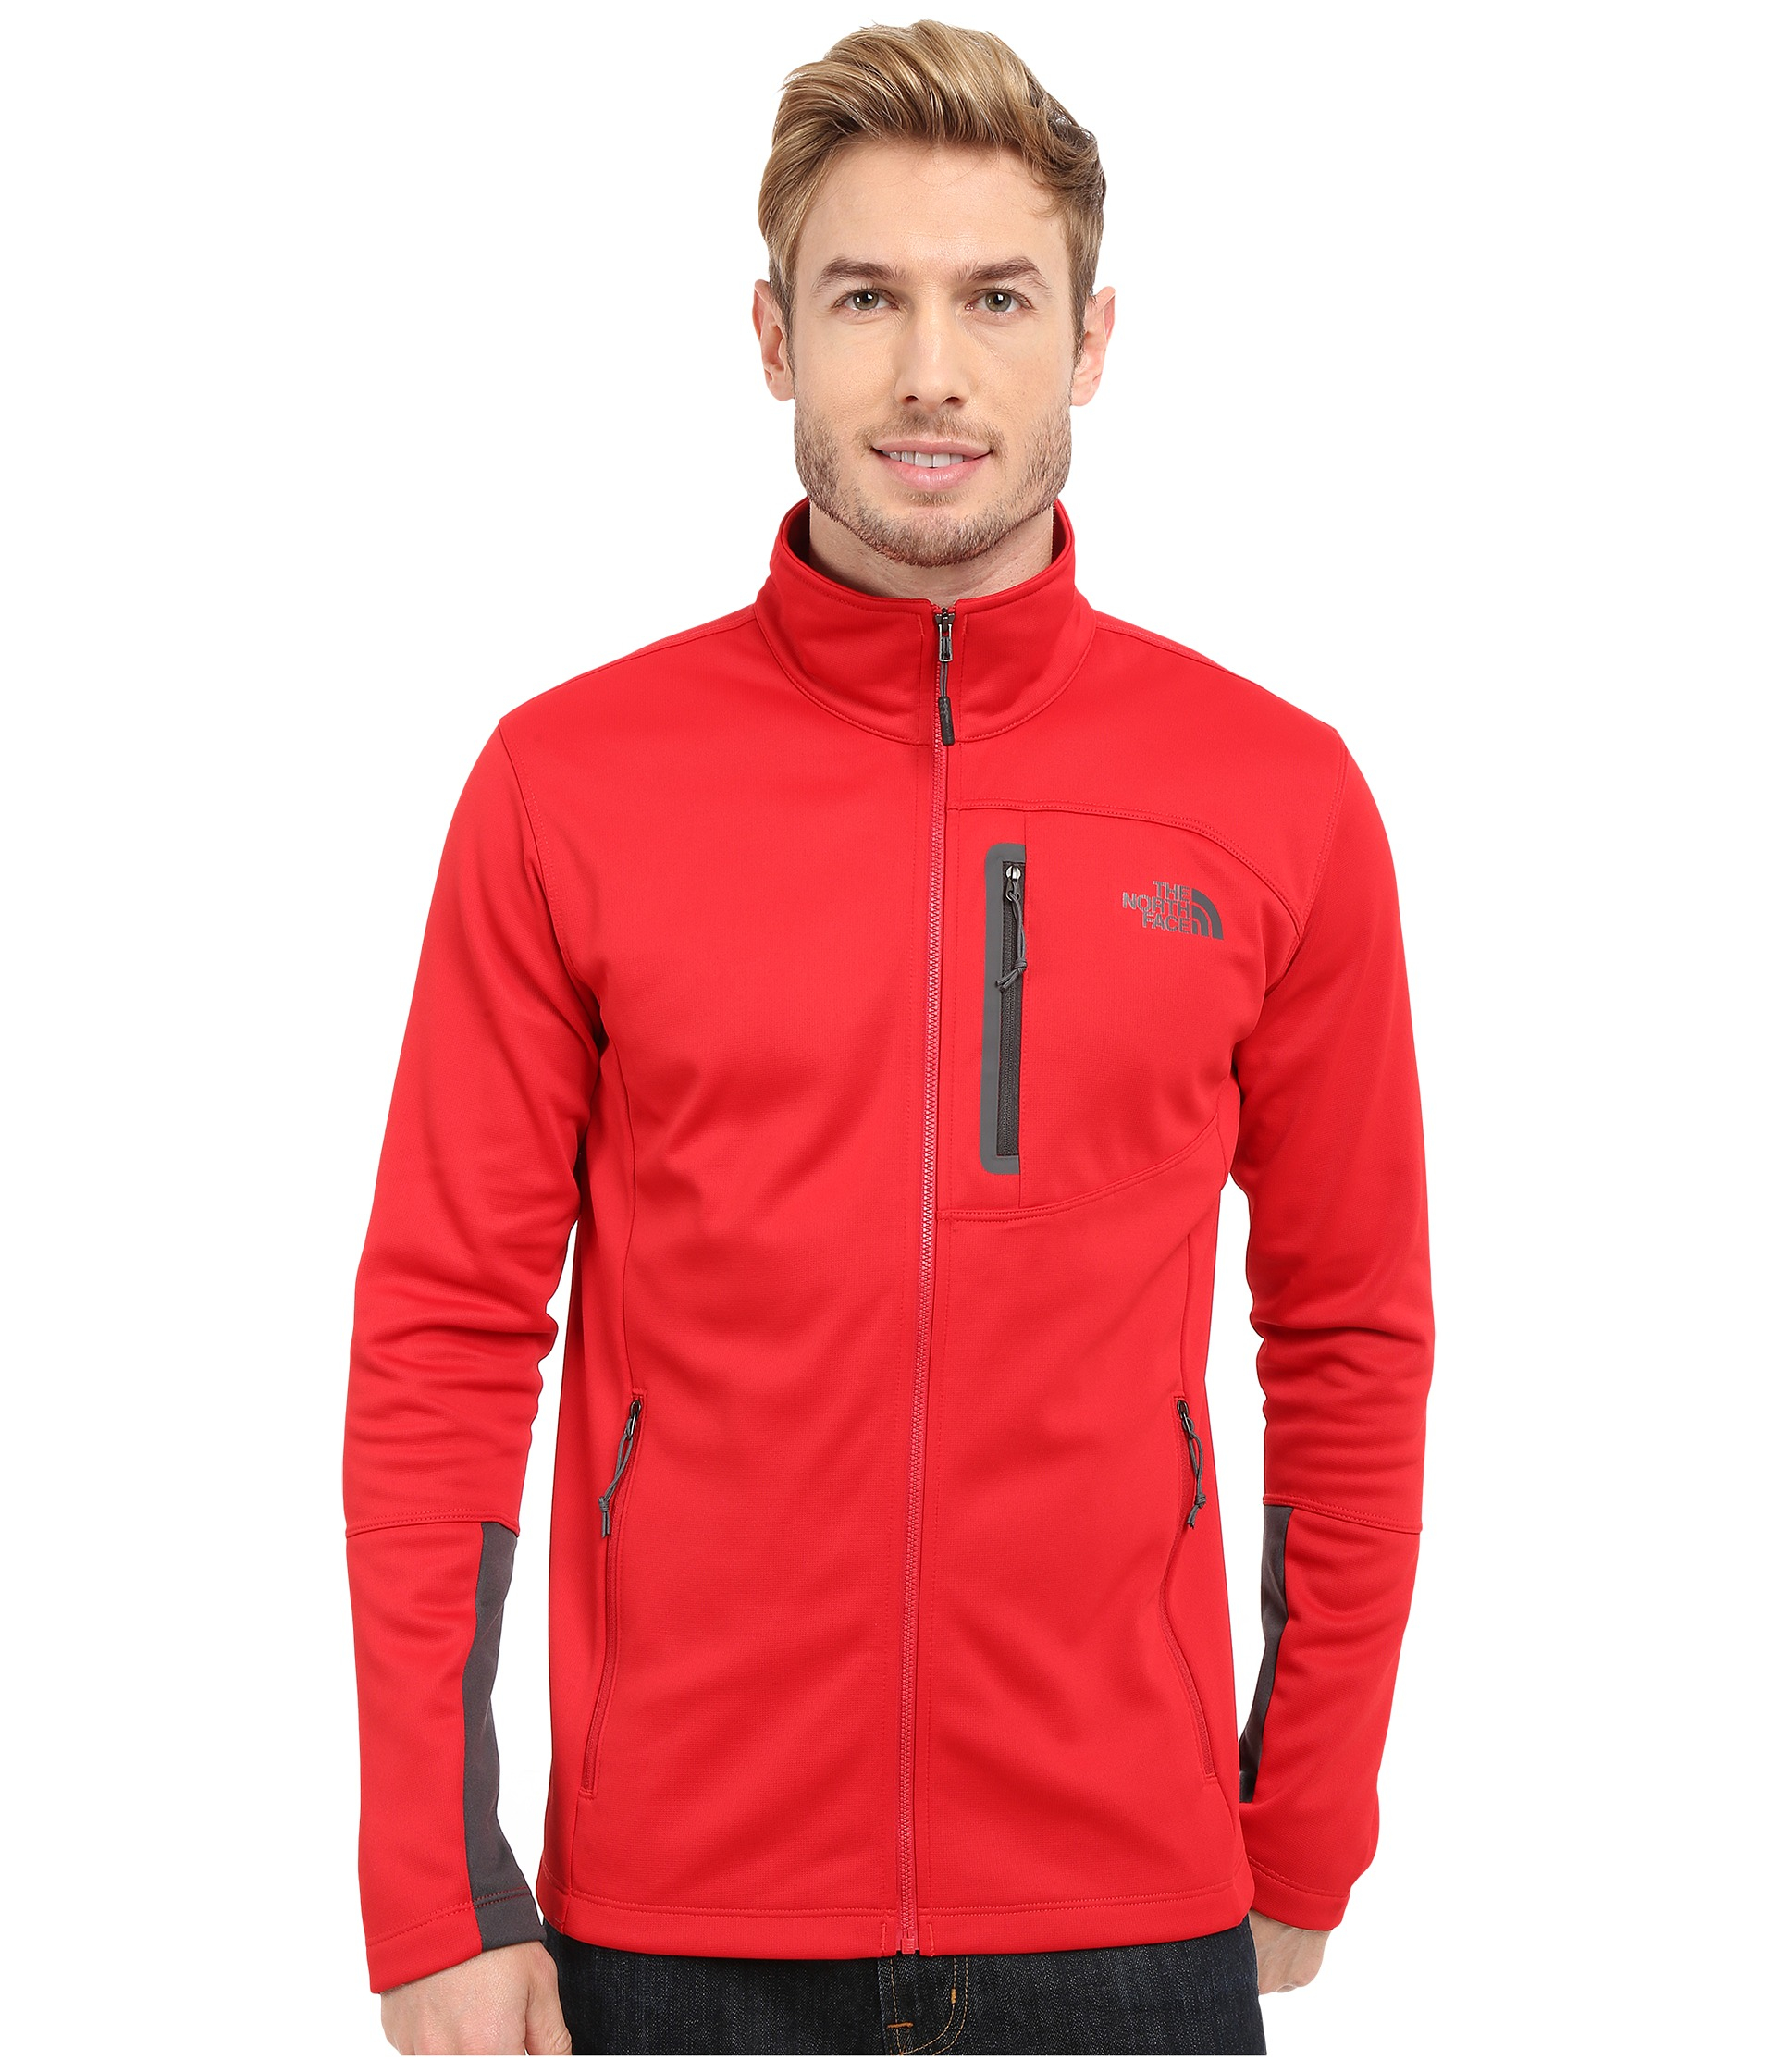 49f44faf7 Men's Red Canyonlands Full Zip Sweatshirt